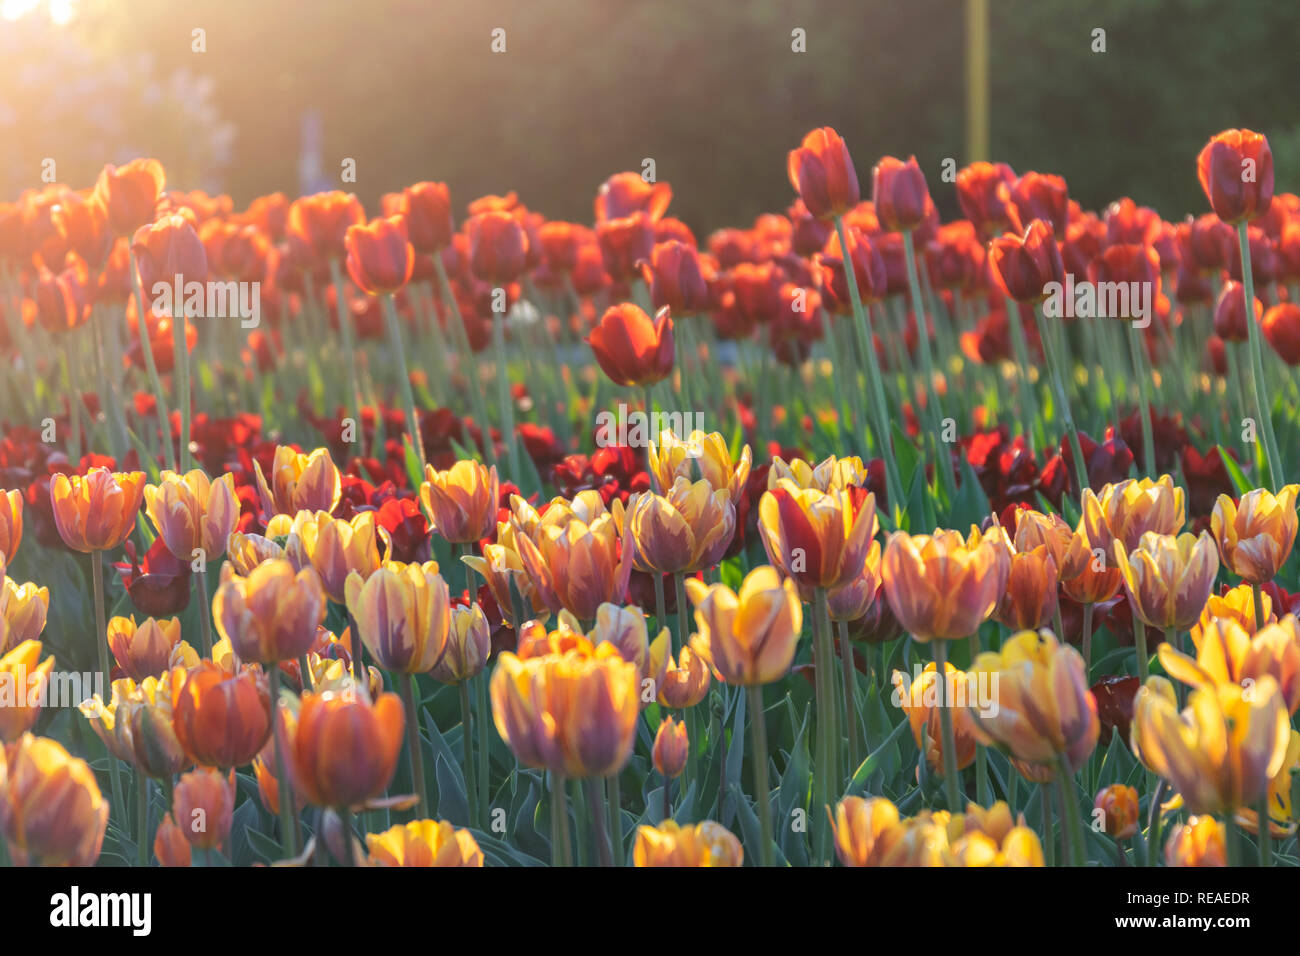 Tulip flower bulb field in the garden, Spring season in Amsterdam Netherlands Stock Photo